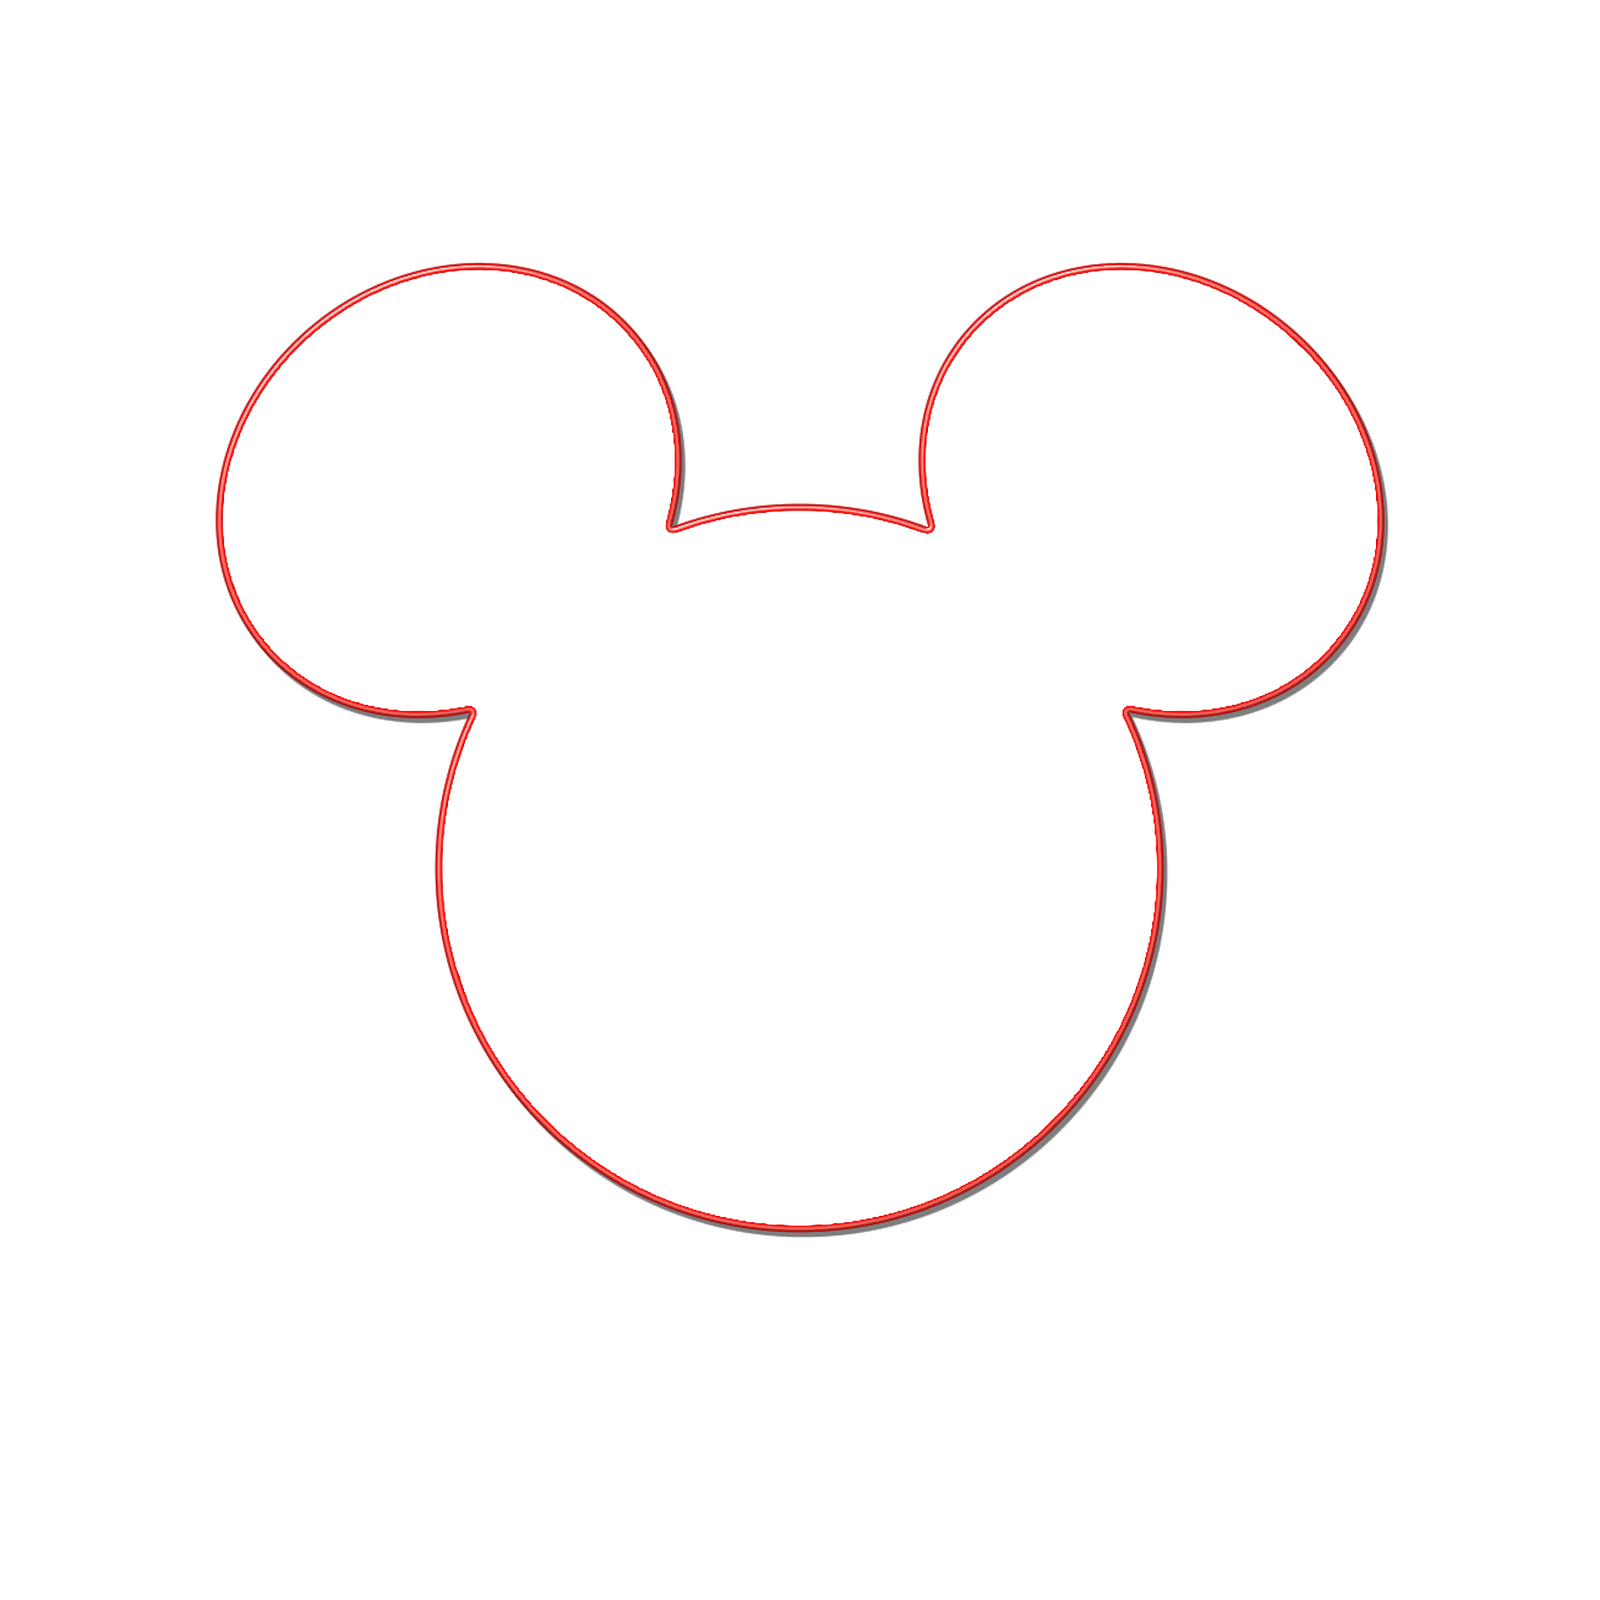 ... Iu0026#39;m Quite Crafty: - Minnie Mouse Silhouette Clip Art